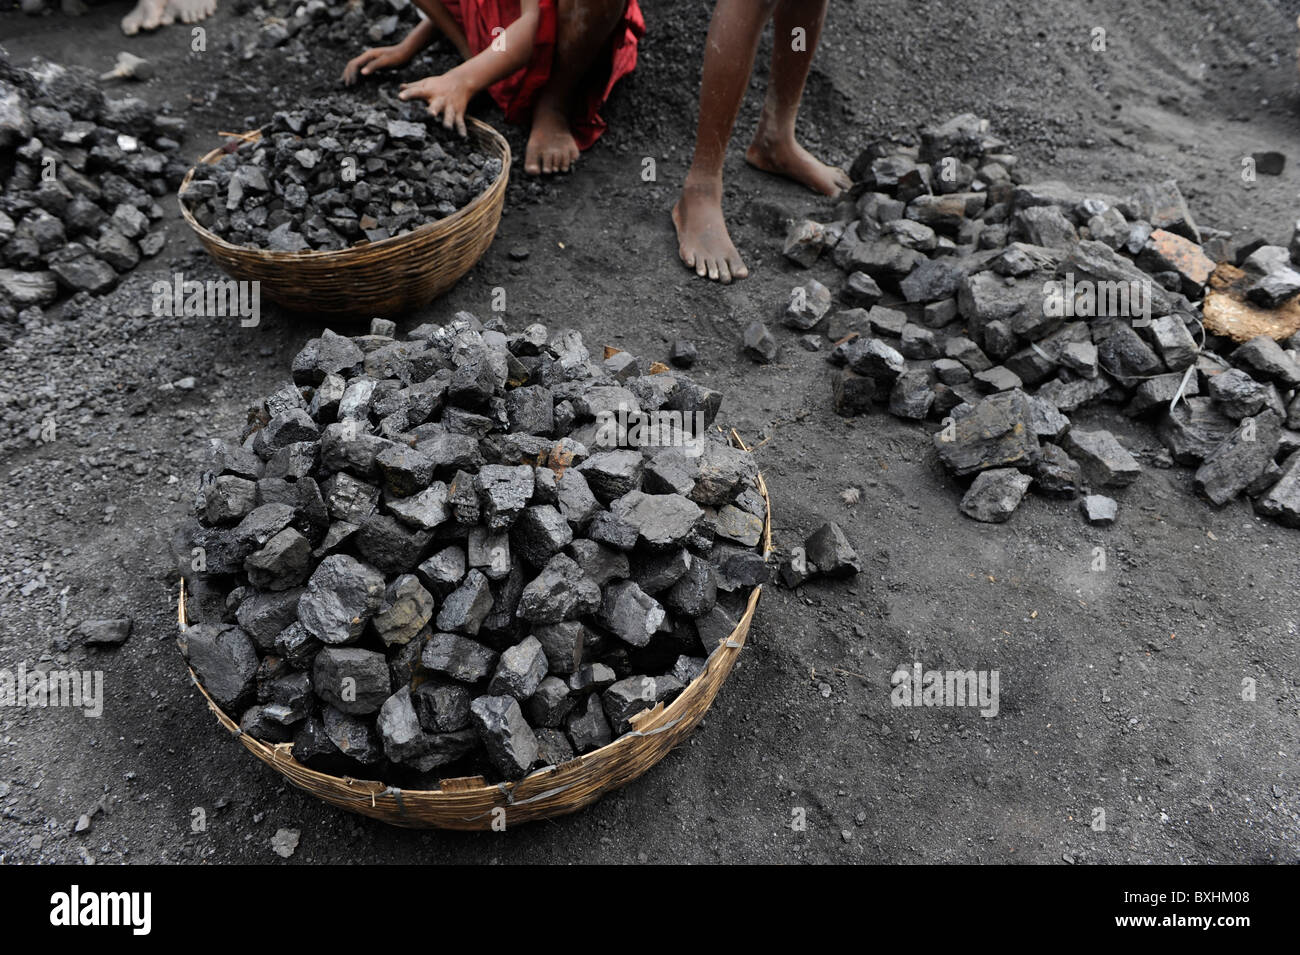 India Jharkhand Jharia children collect coal from coalfields - Stock Image